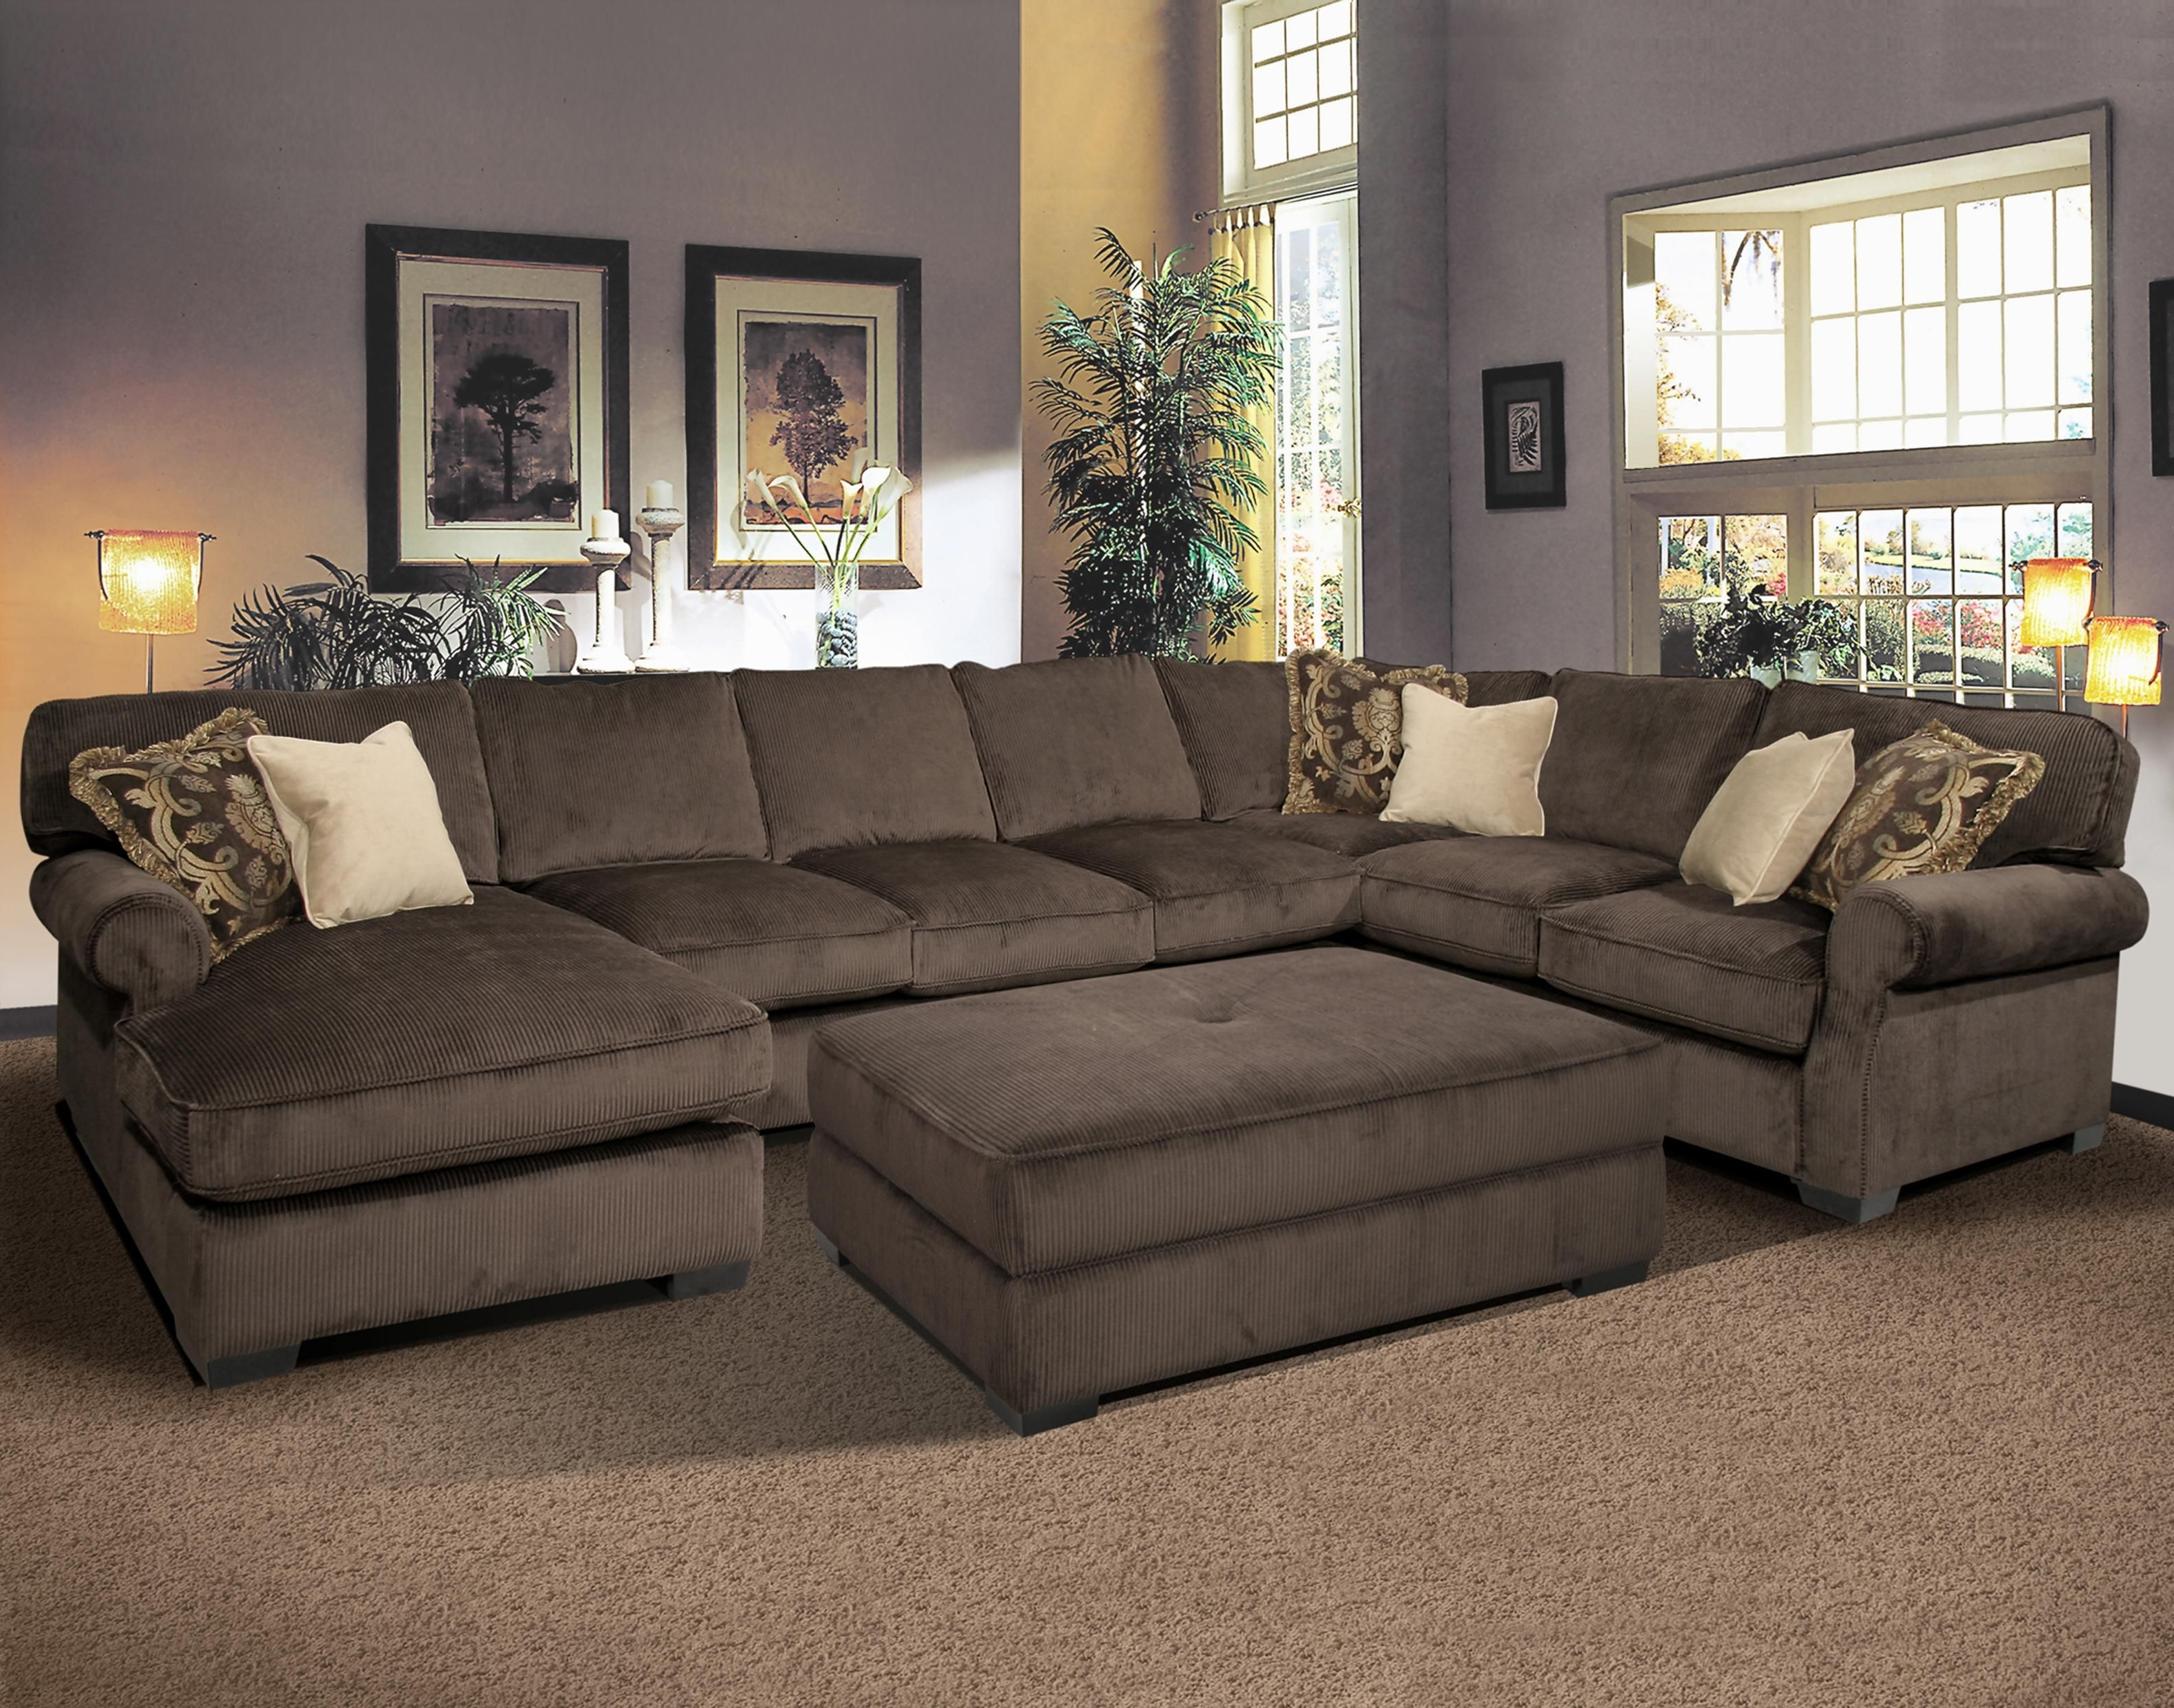 Deep Seating Sectional Sofas Intended For Latest Sofa : Extra Deep Seated Sectional Sofa Best Home Furniture Design (View 11 of 15)